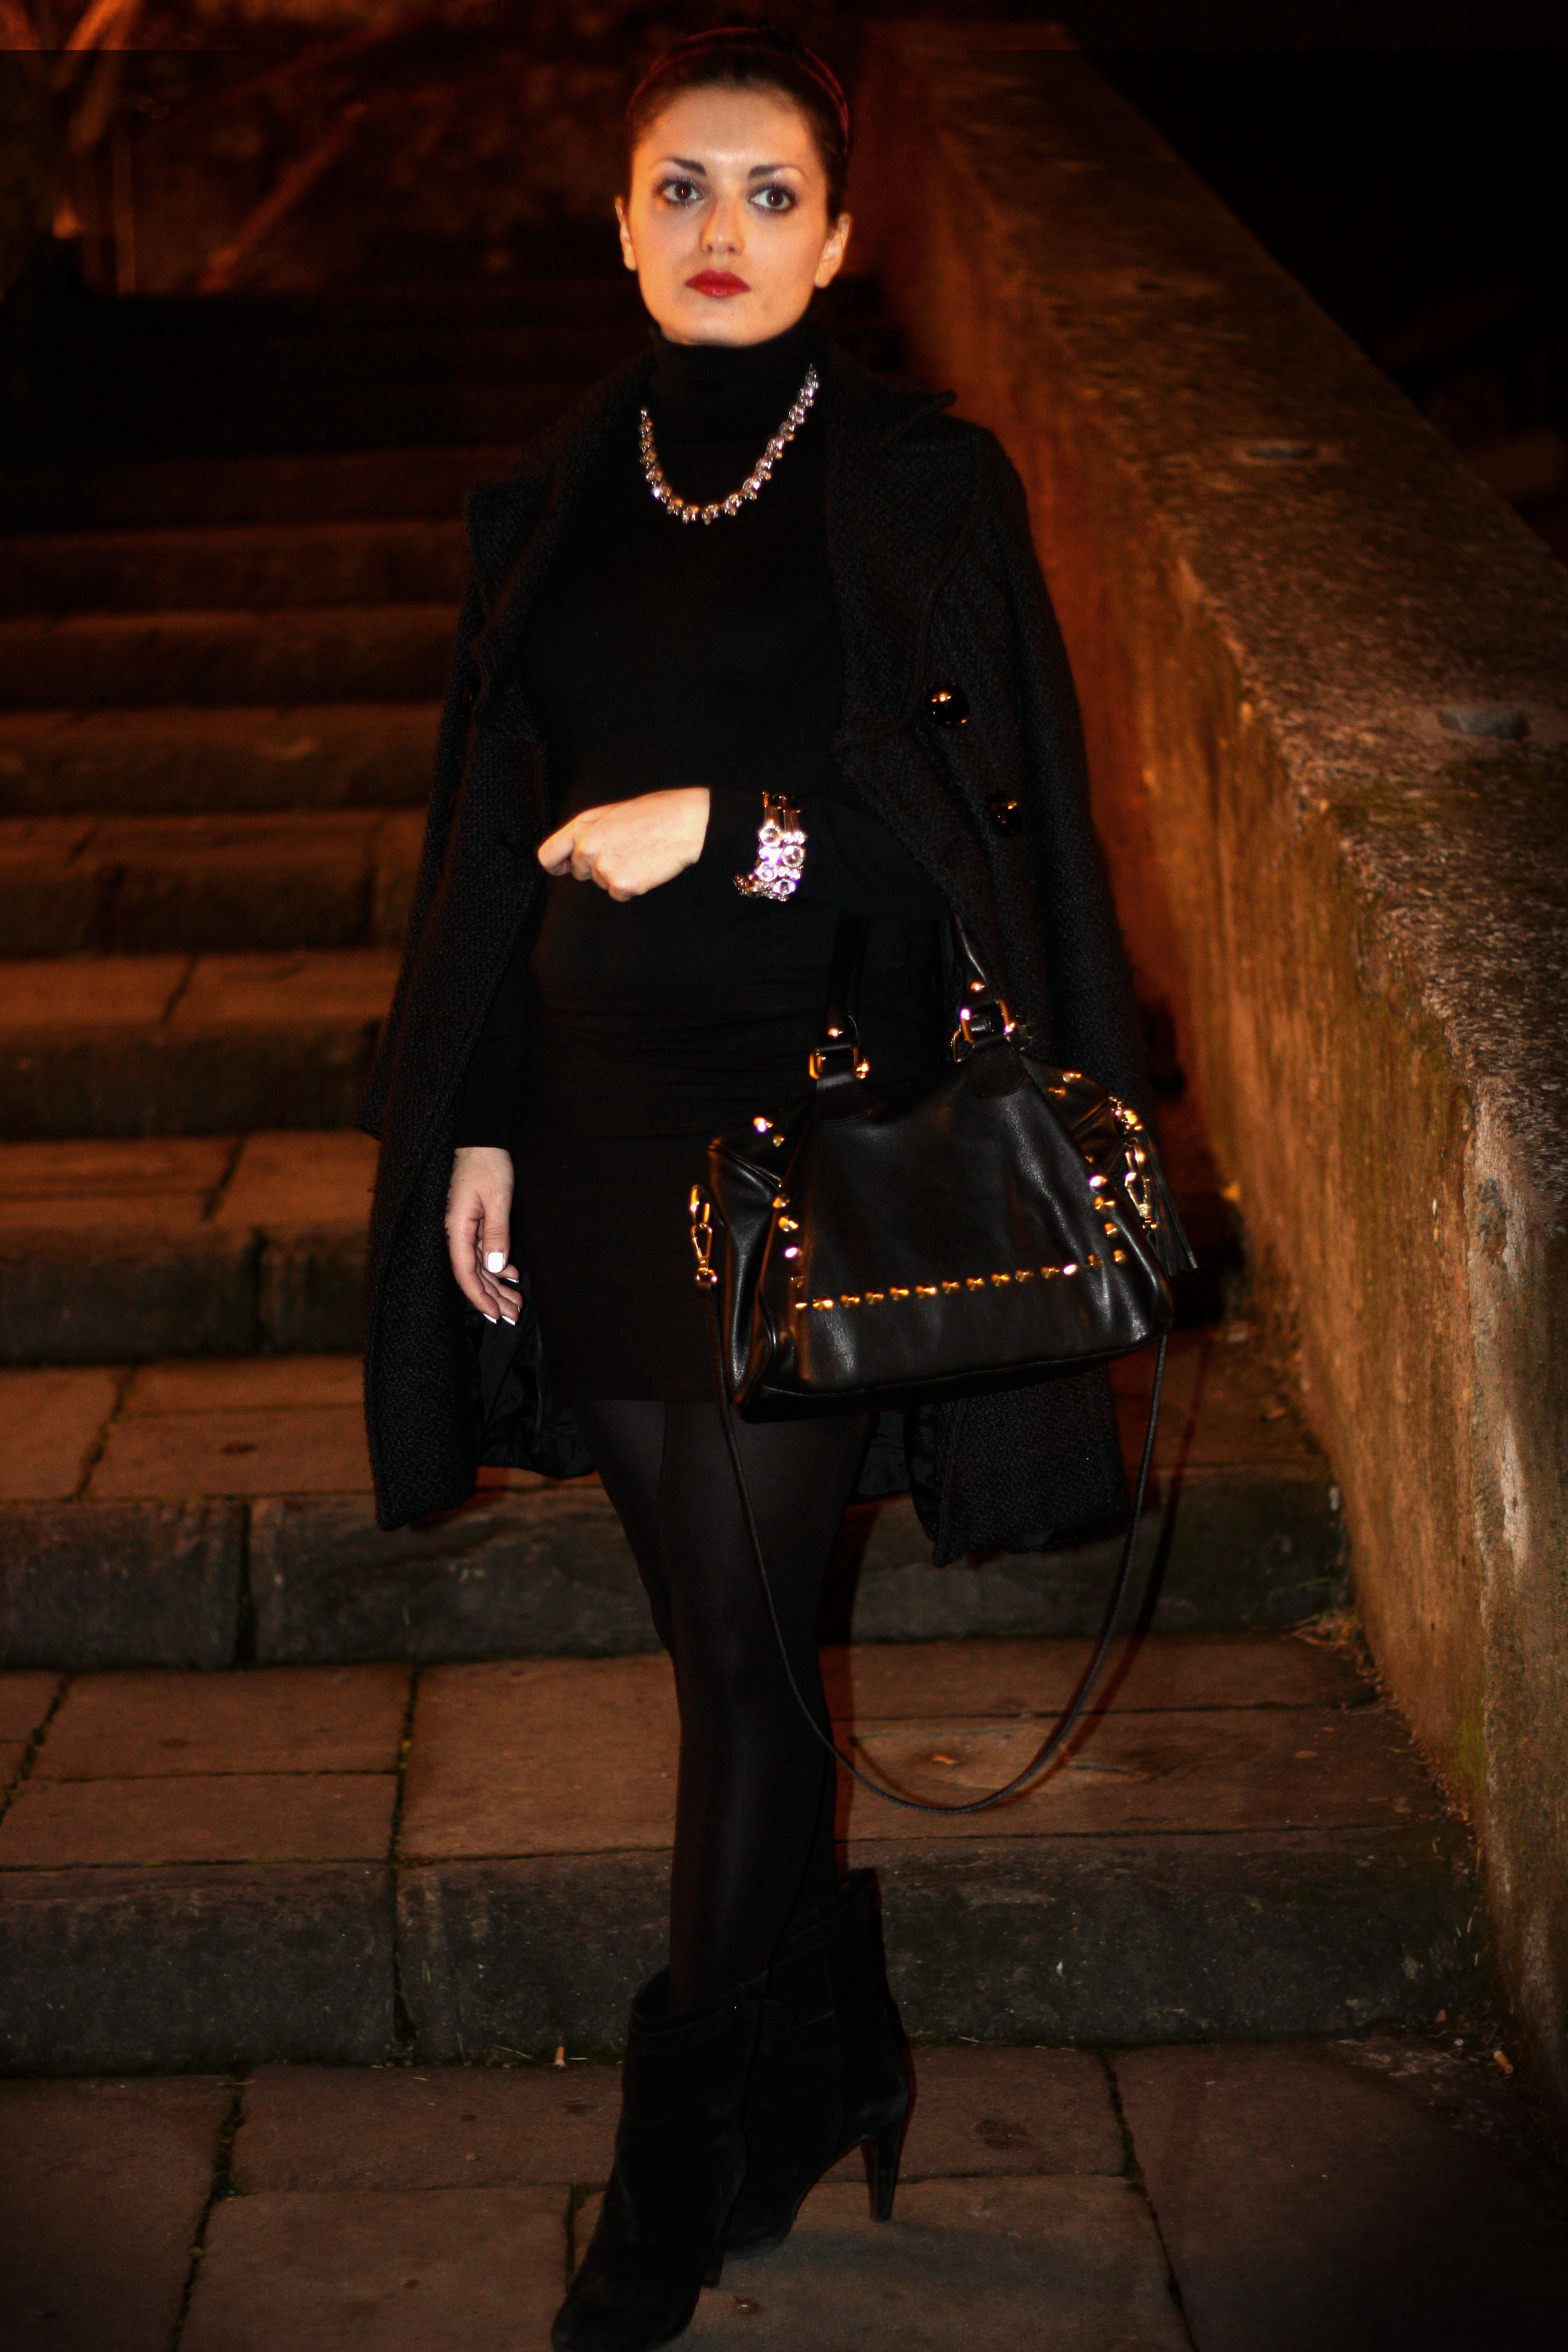 chic in black - fashion blog